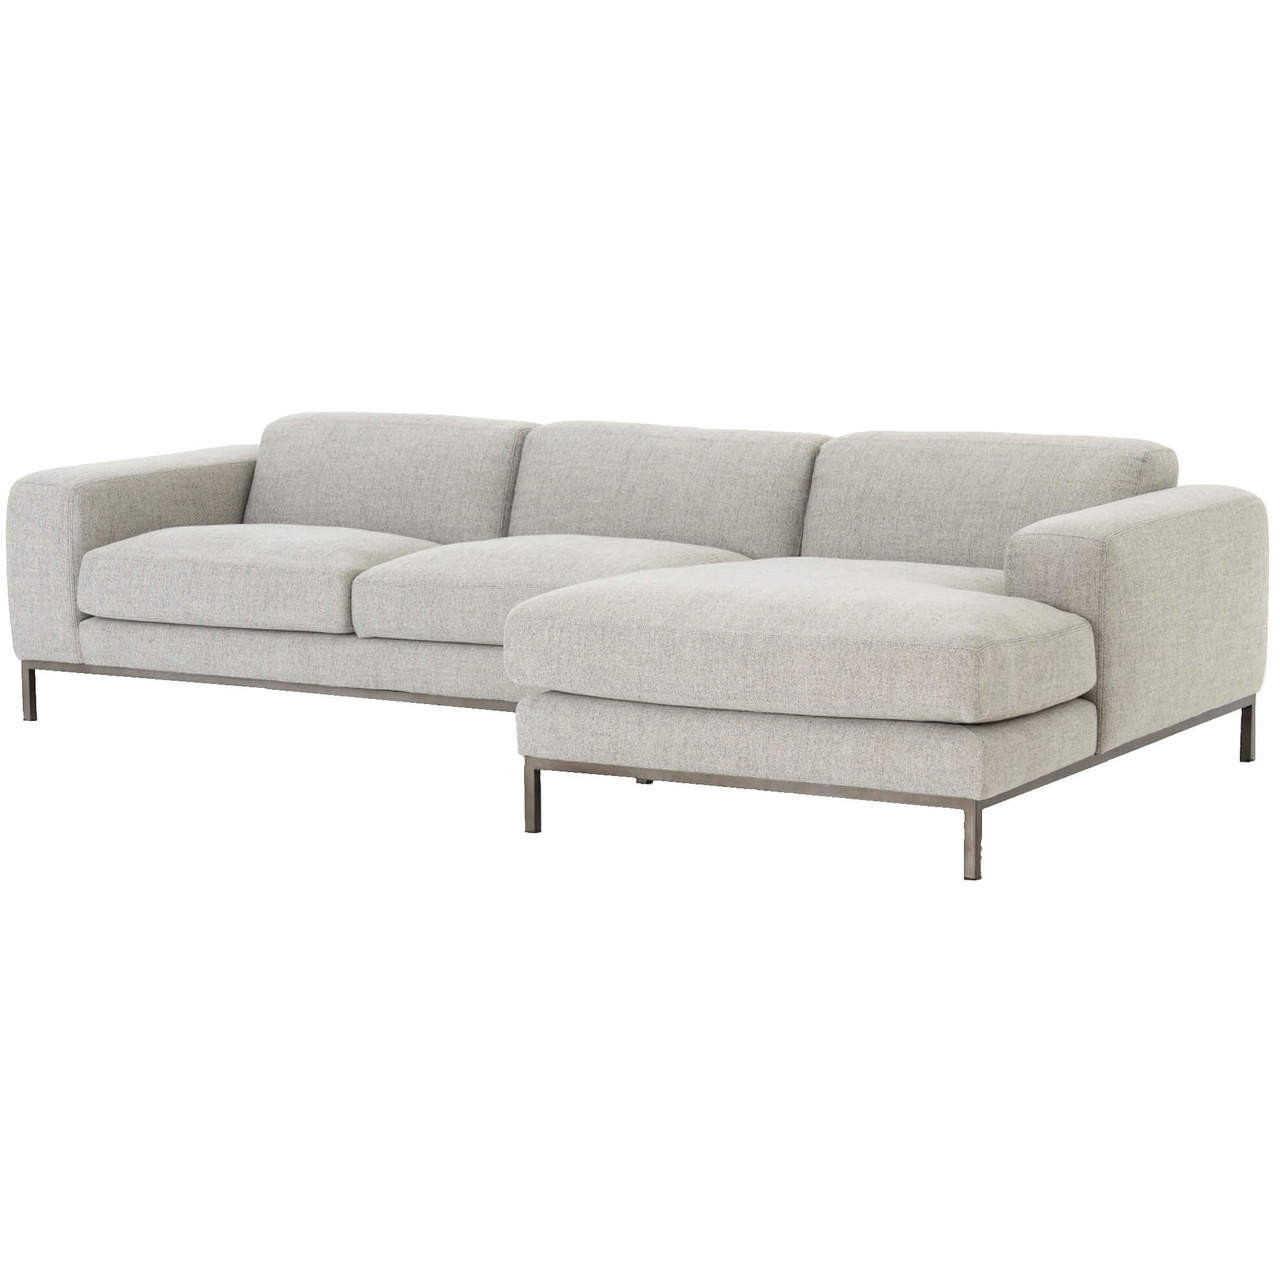 Benedict Modern Grey Fabric Right Facing Sectional Sofa 111\